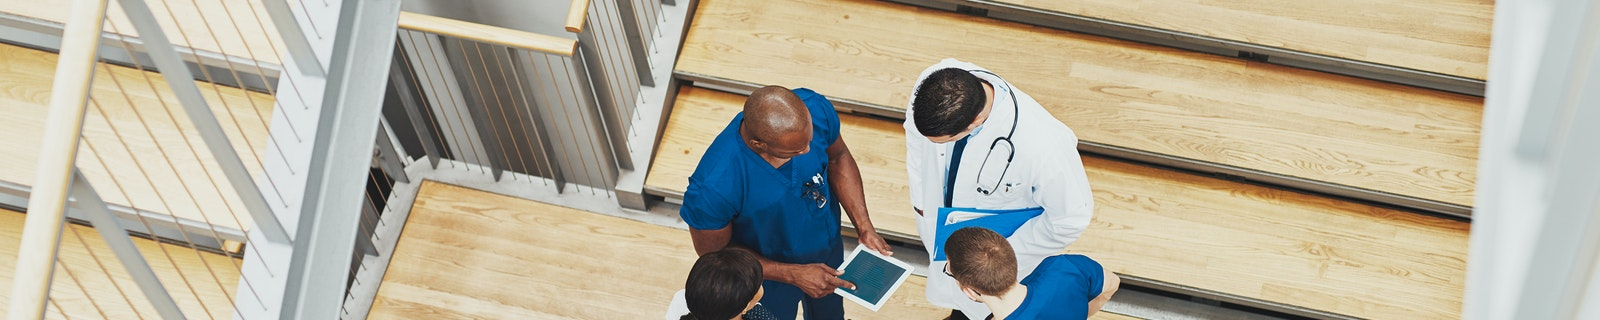 Medical team having an emergency discussion standing grouped in a stairwell at the hospital looking up information on a tablet